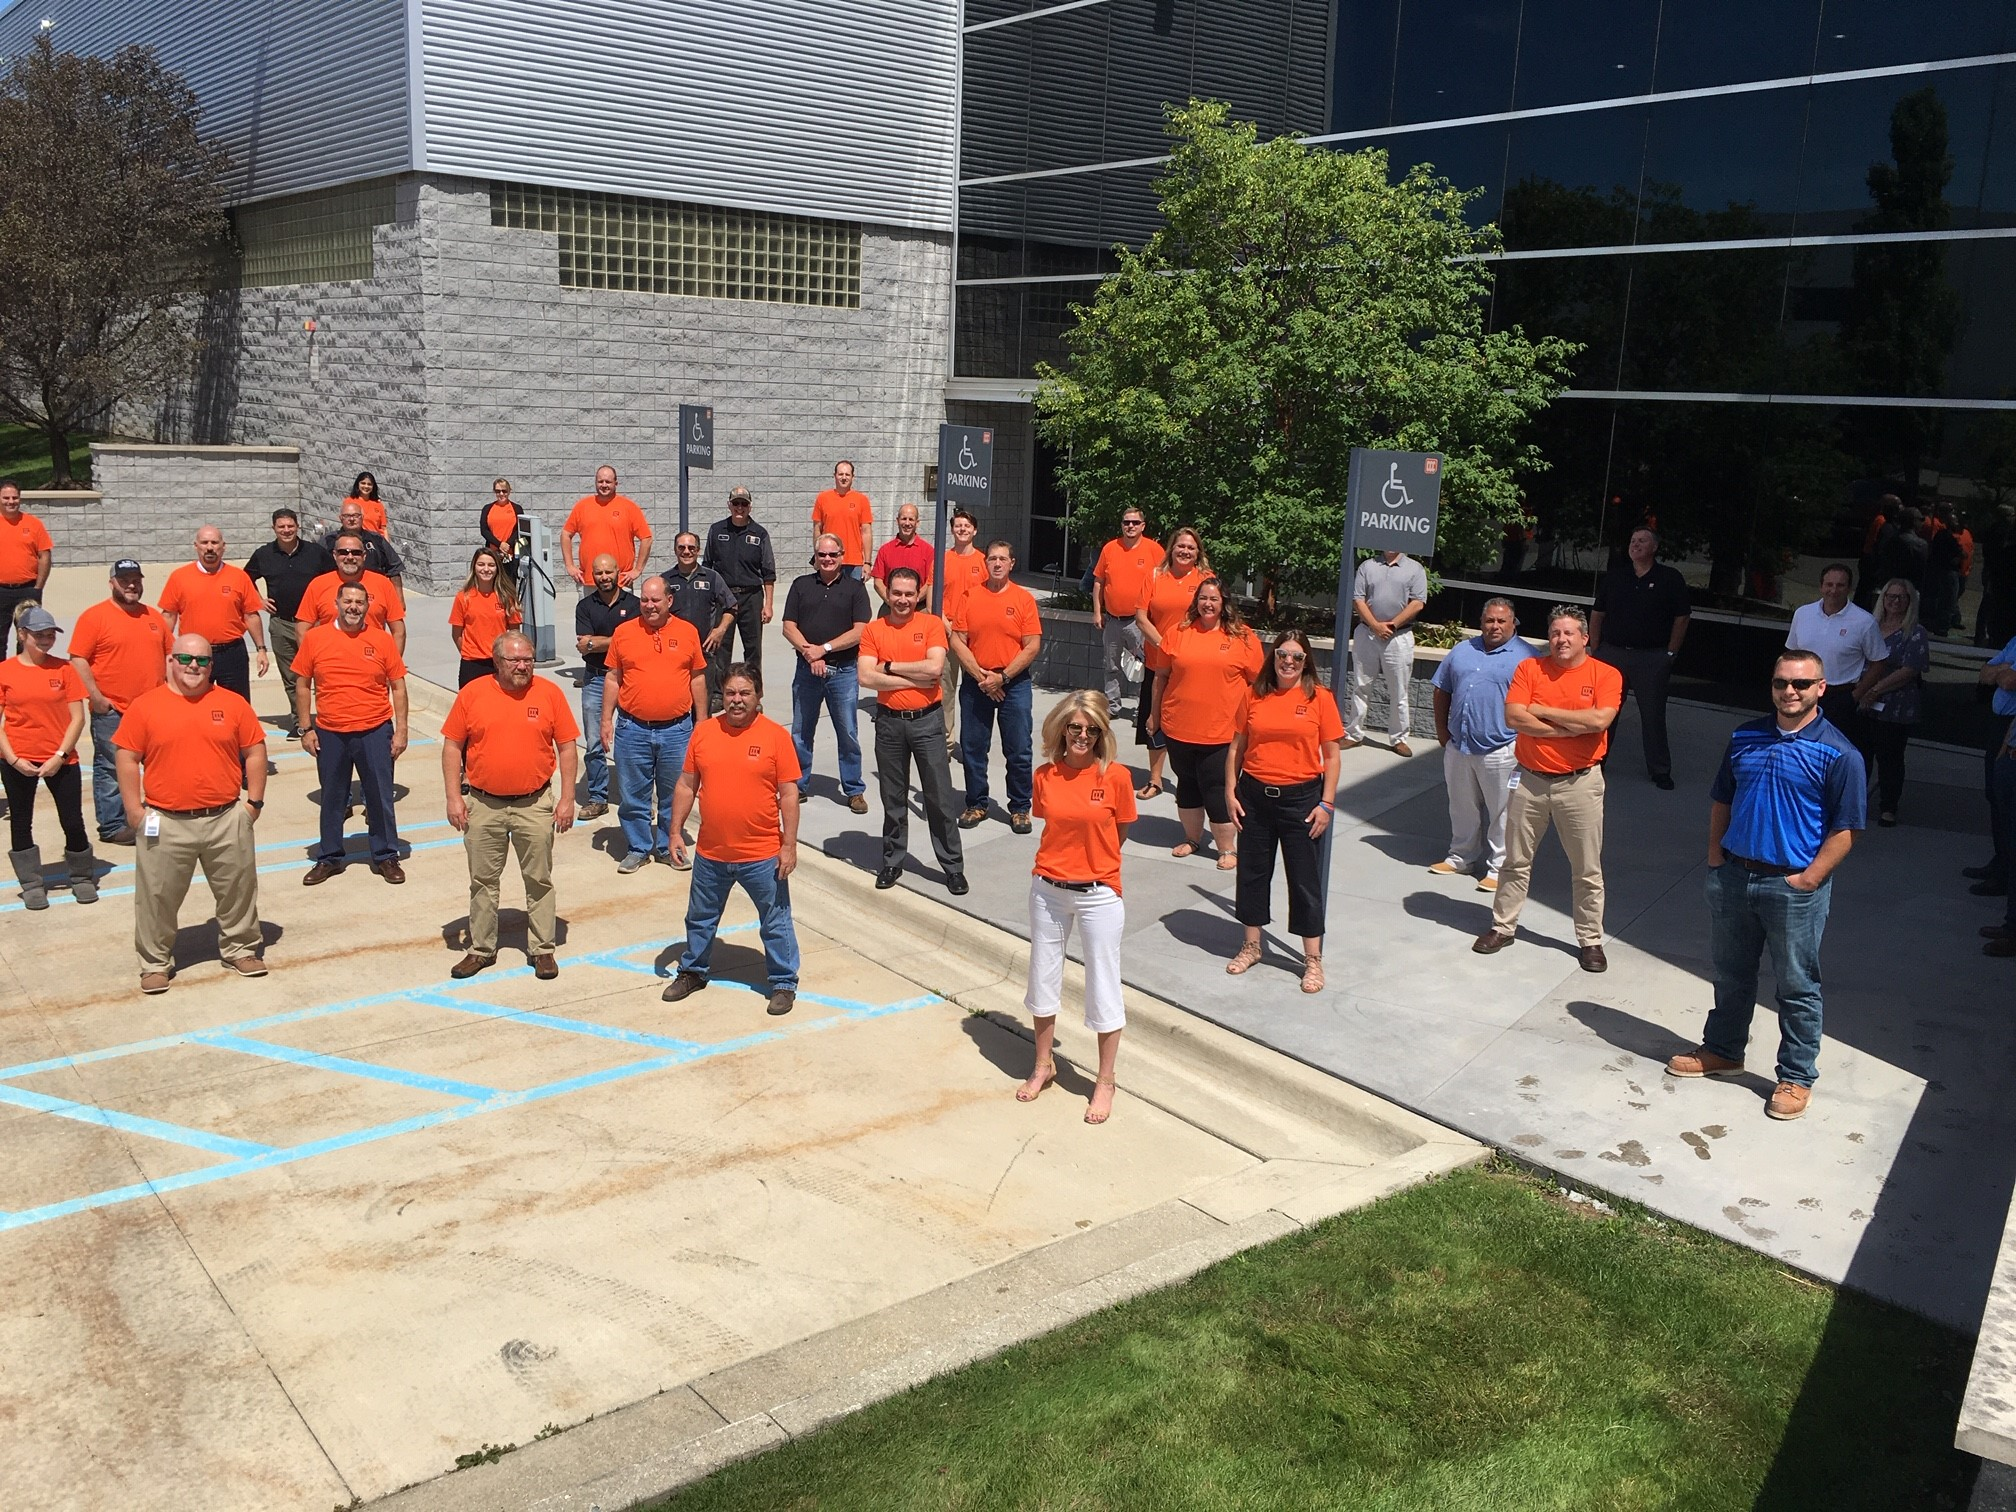 workers in orange shirts pose in front of office building